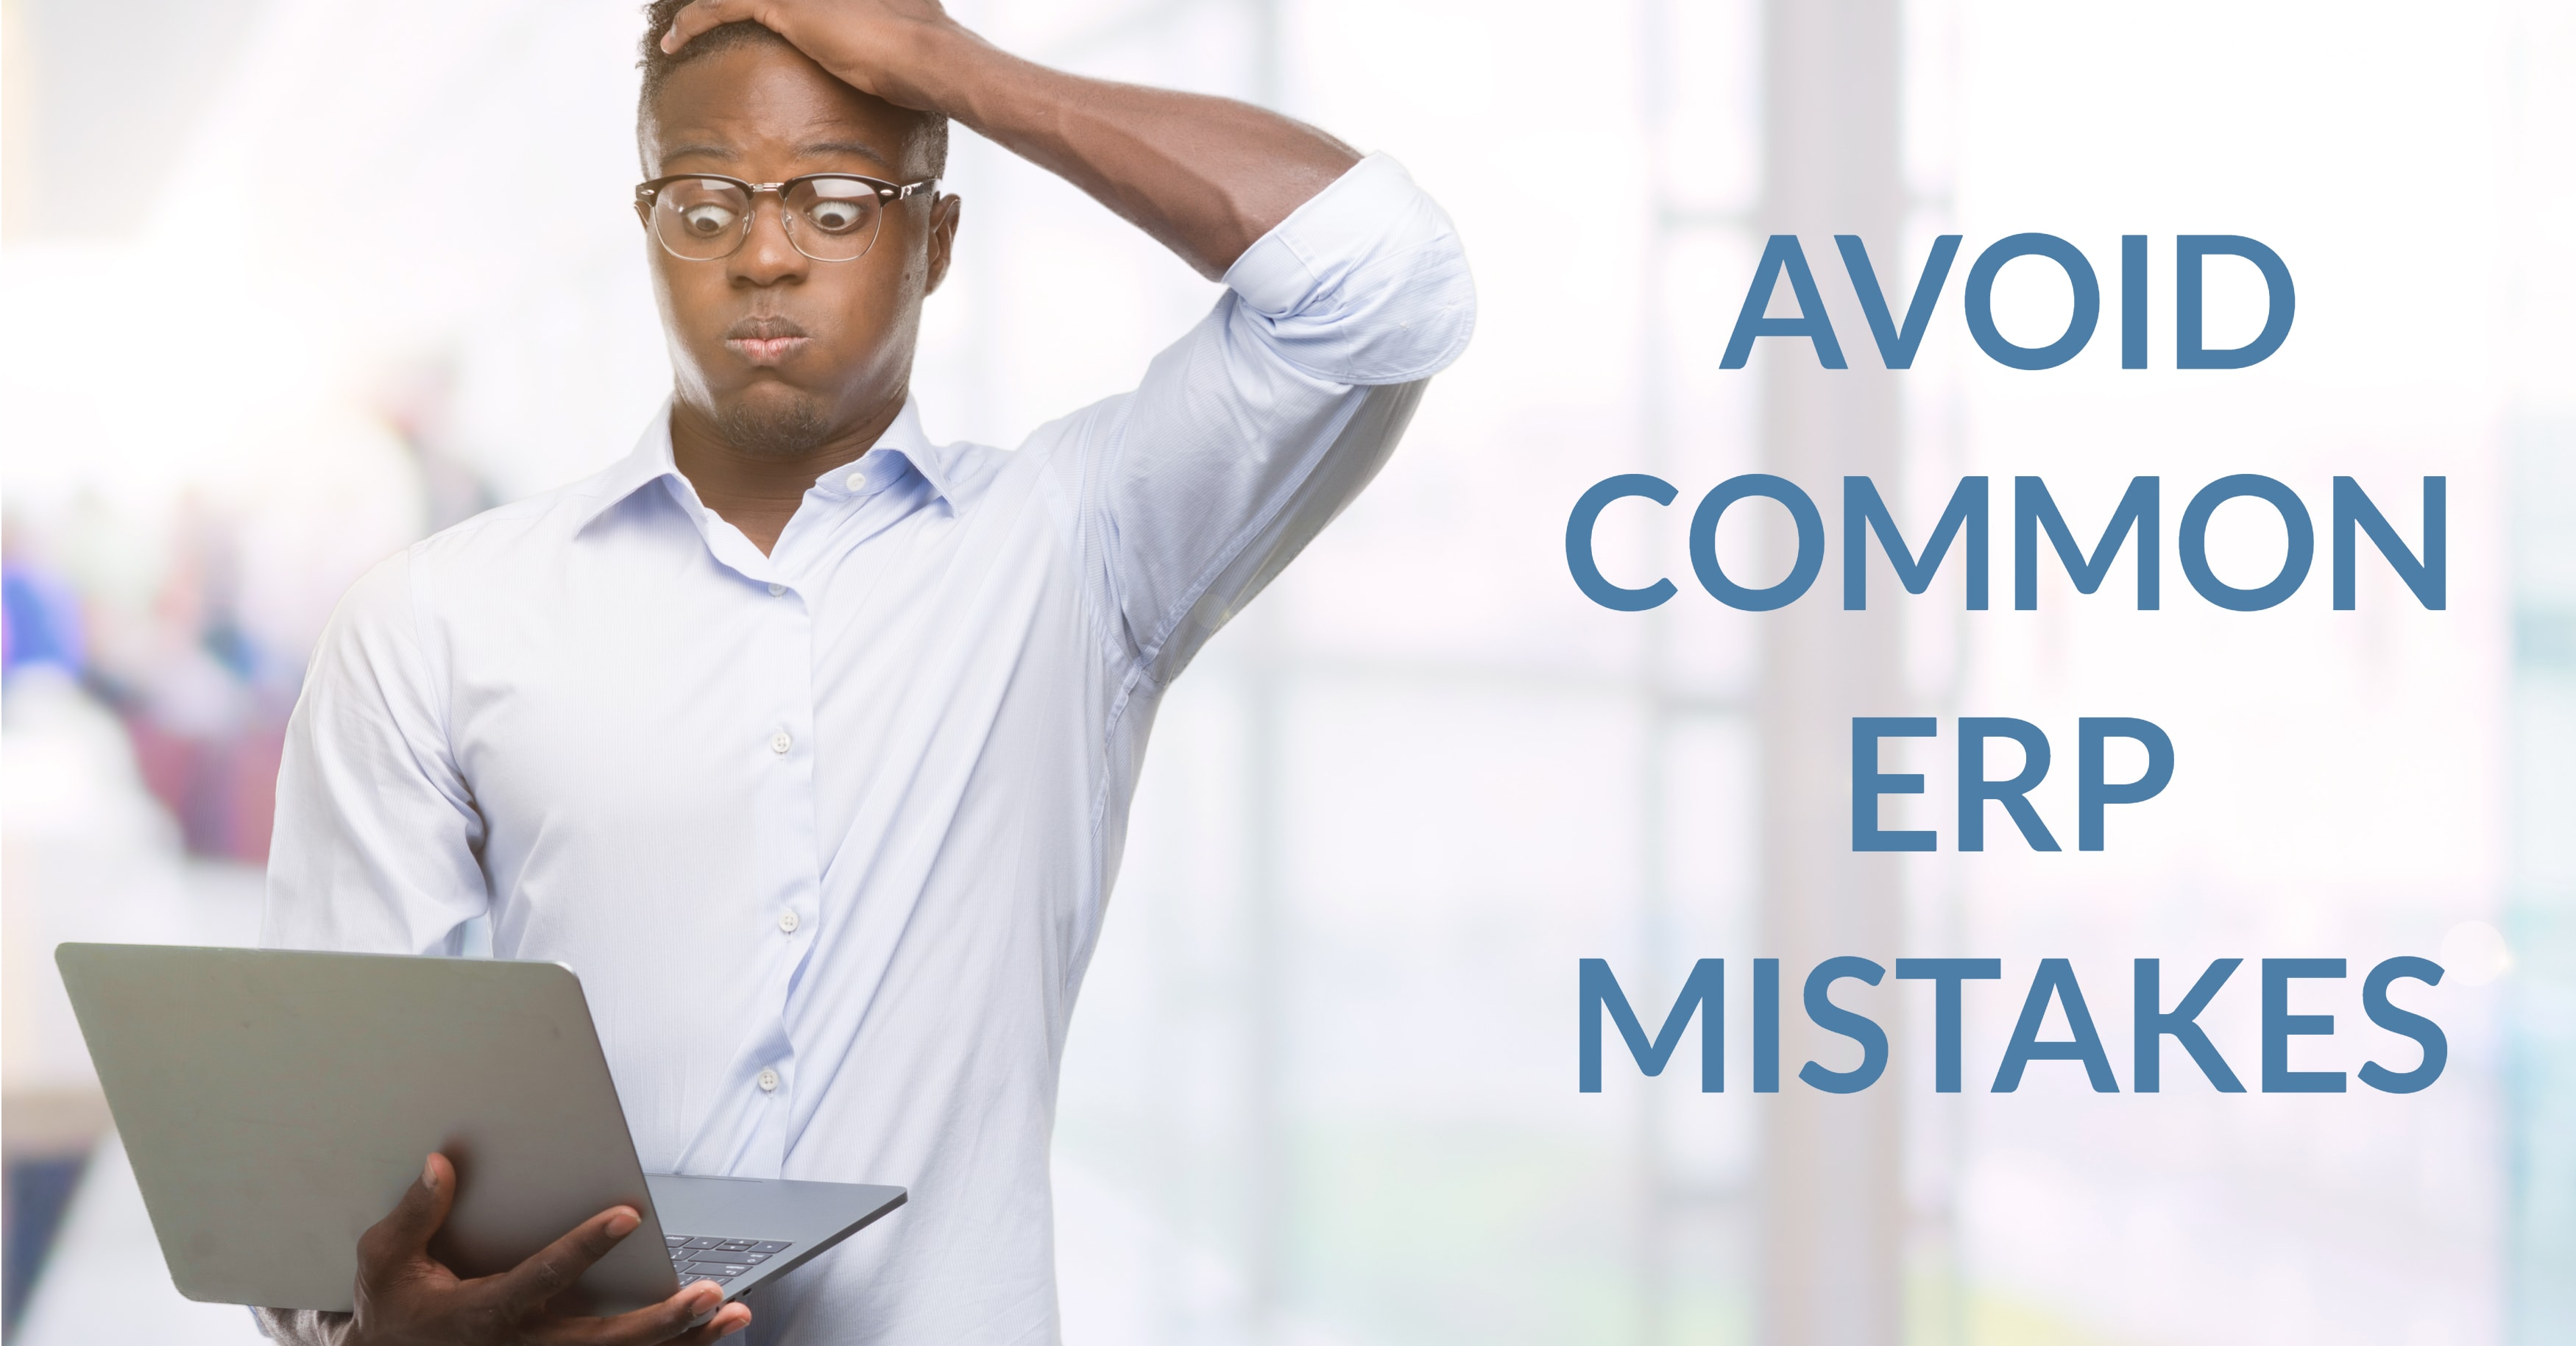 Avoid ERP Mistakes